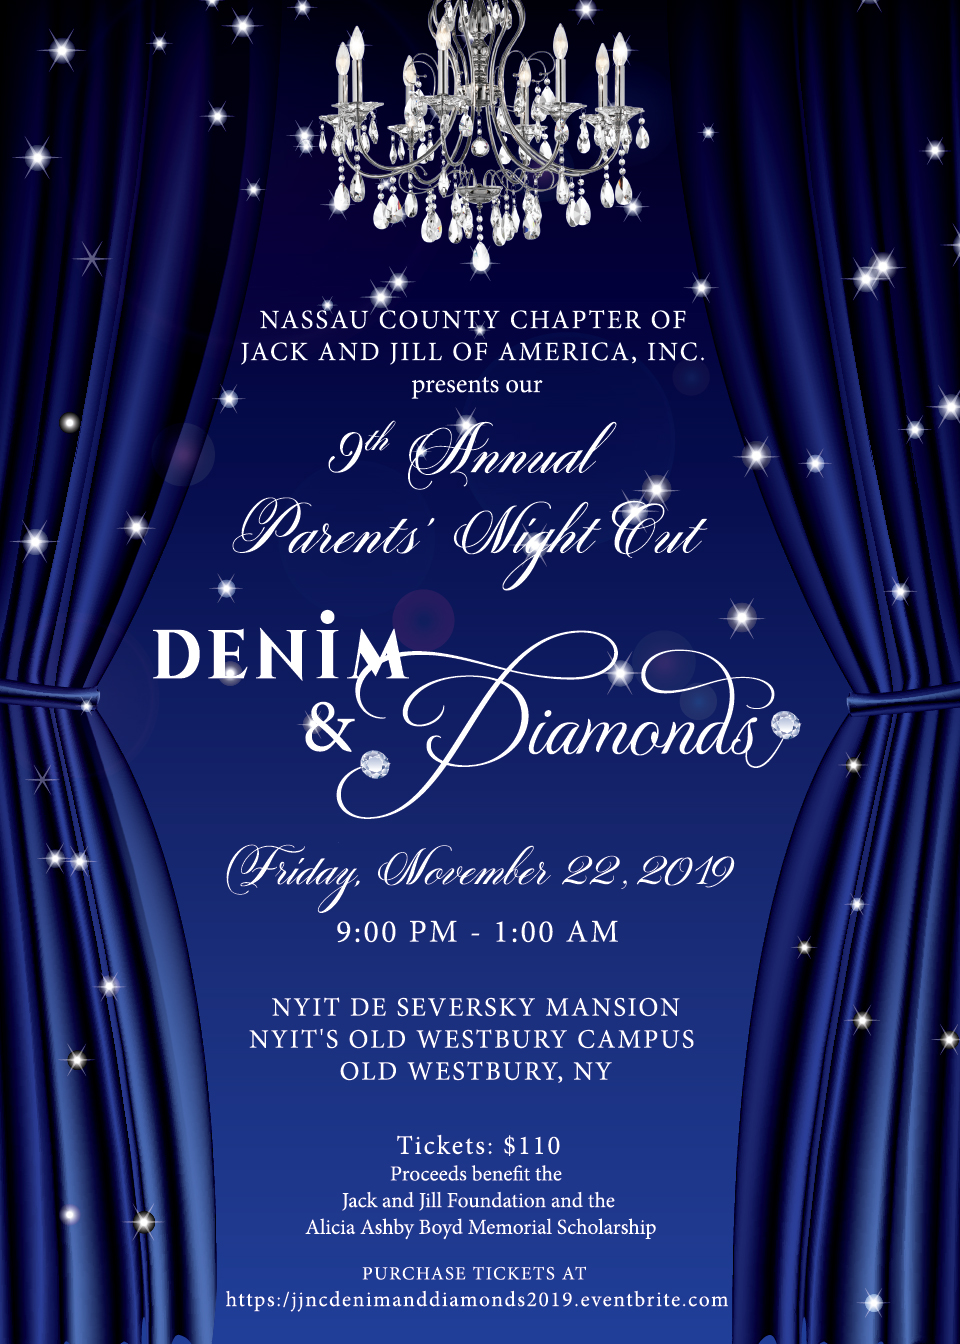 Jack and Jill Denim and Diamonds Invite